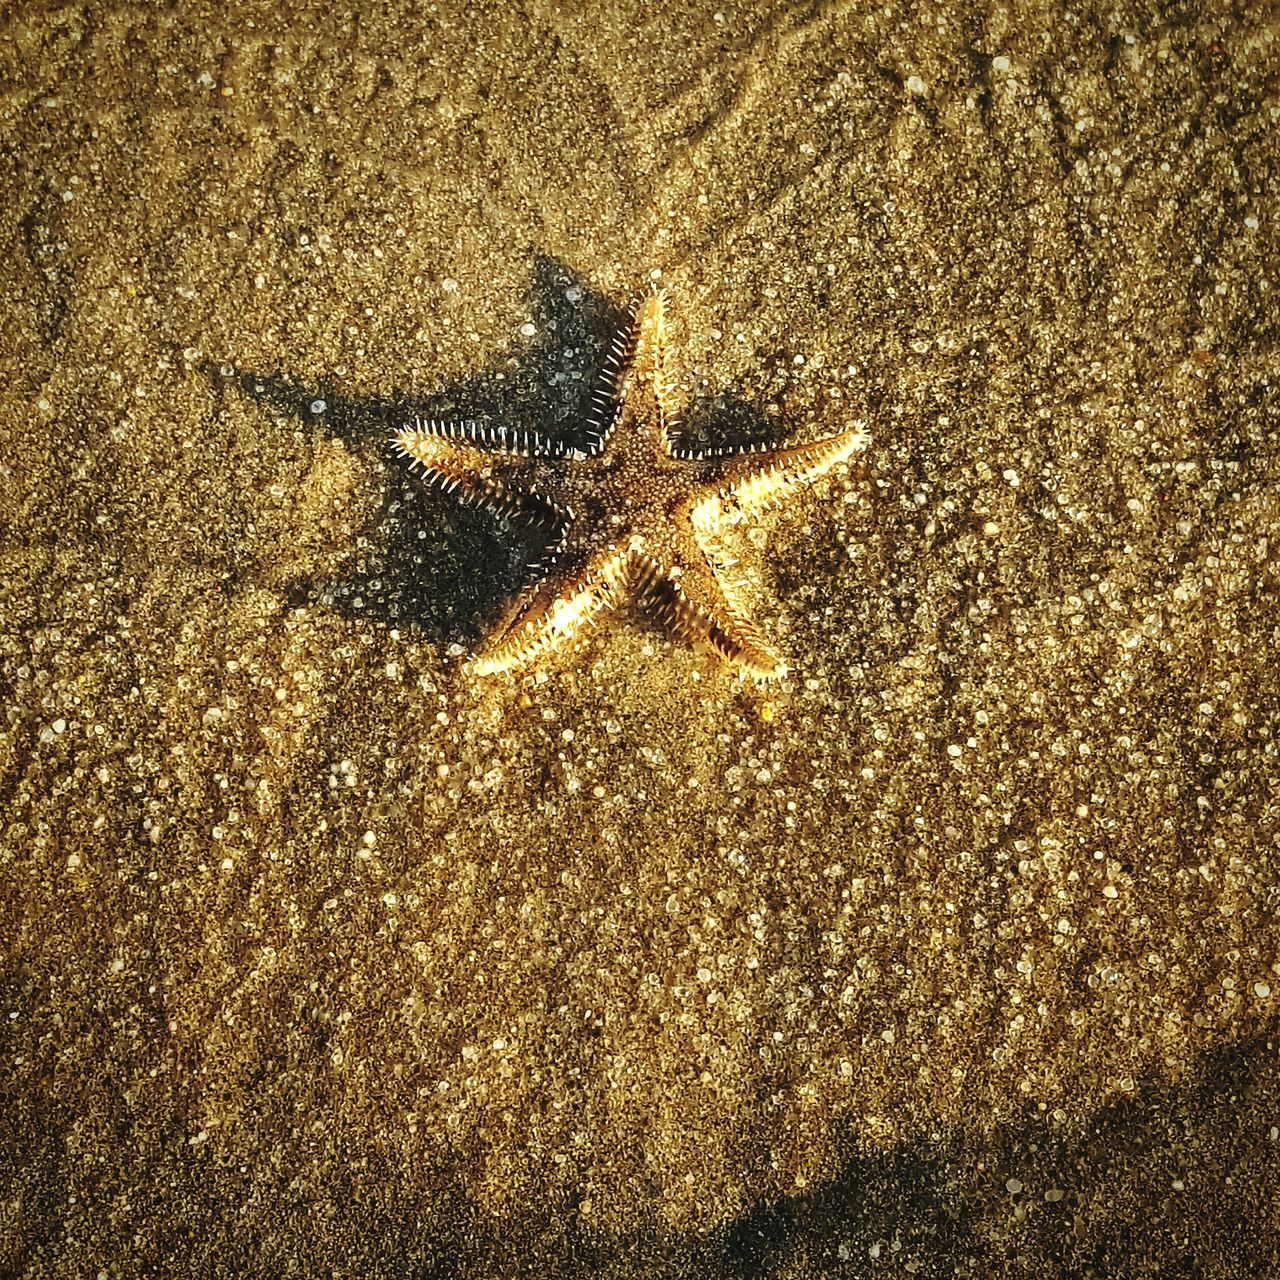 Starfish on the beach Gold Colored Close-up Beach Nature Sand Starfish  Starfish At Beach